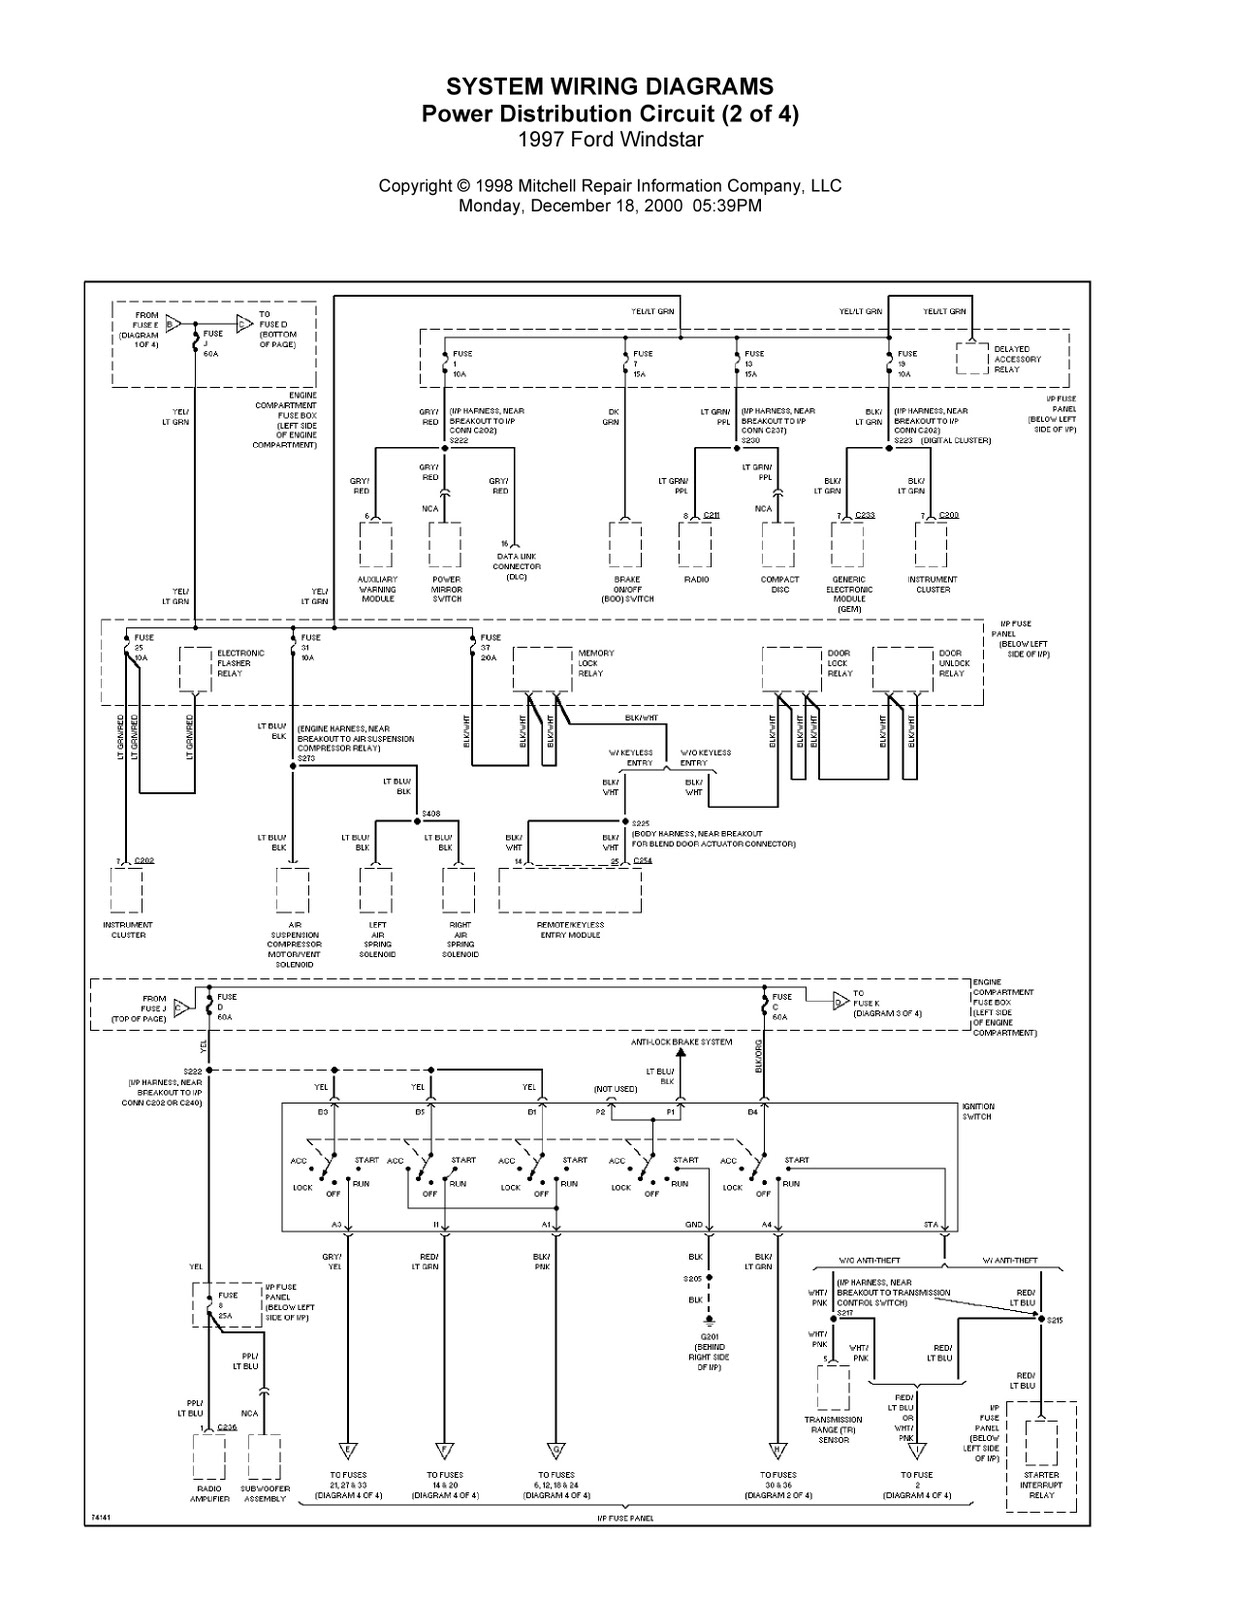 medium resolution of 1997 ford windstar complete system wiring diagrams ford windstar wiring schematic